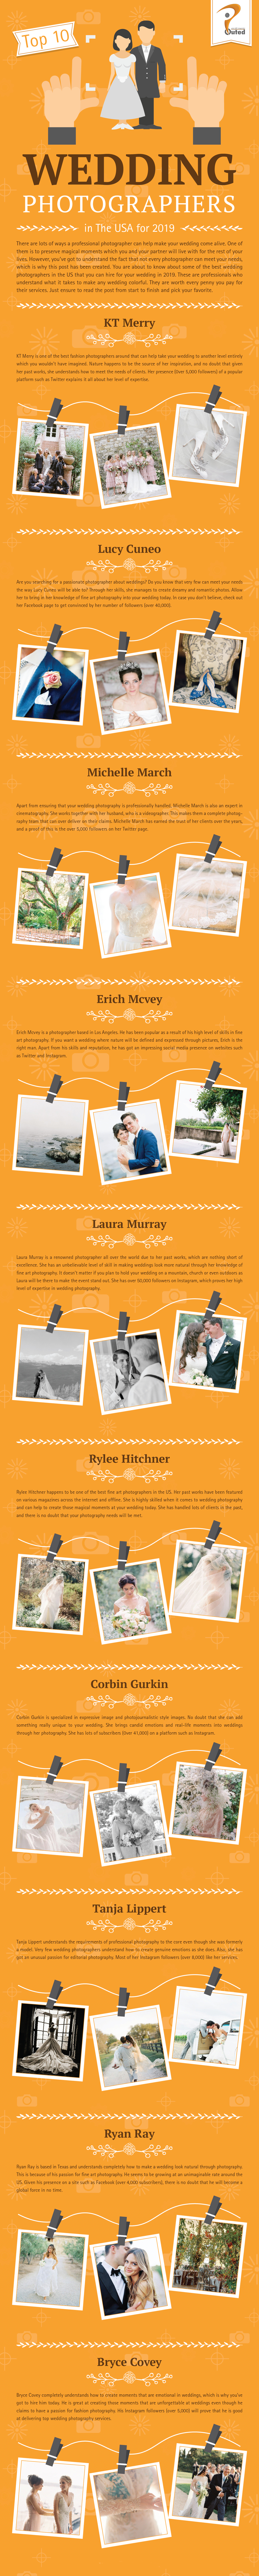 top-10-best-wedding-photographers Top 10 Wedding Photographers in The USA for 2020